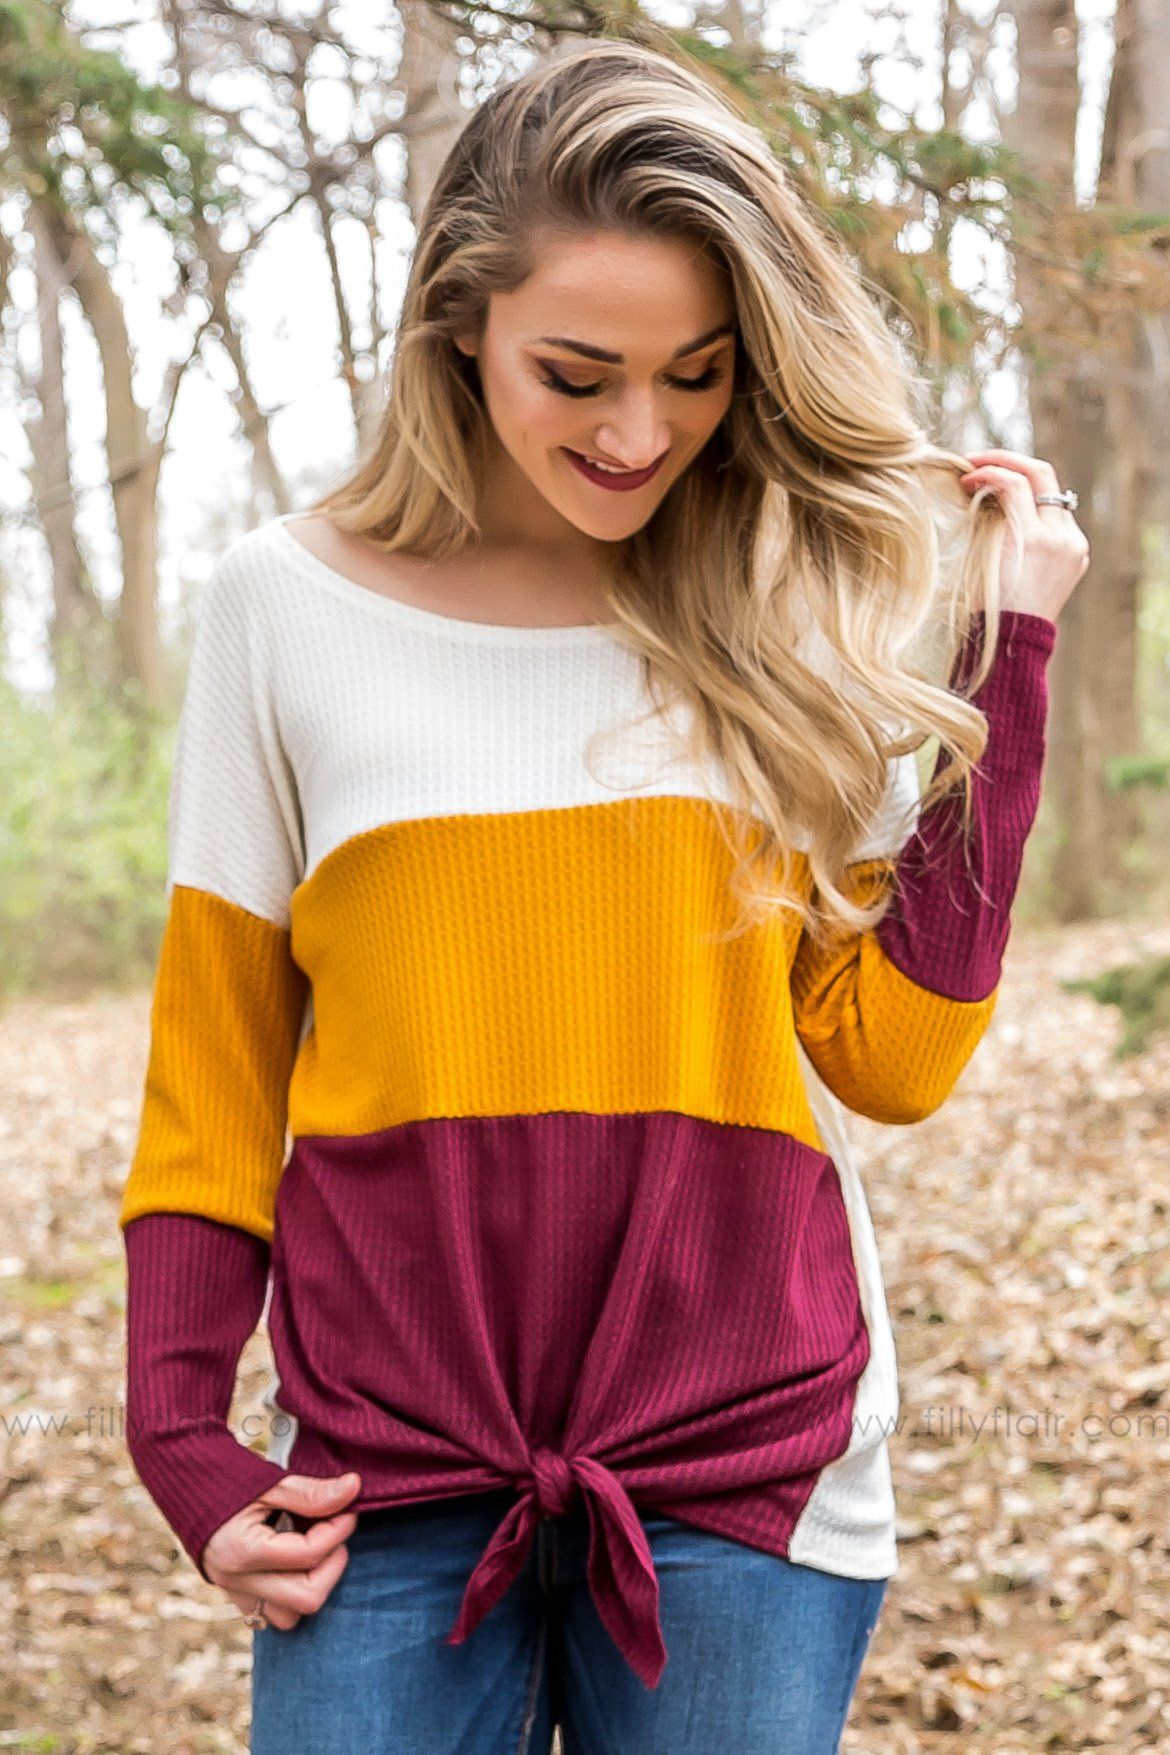 Everyday Moments Waffle Color Block Tie Top In Burgundy - Filly Flair